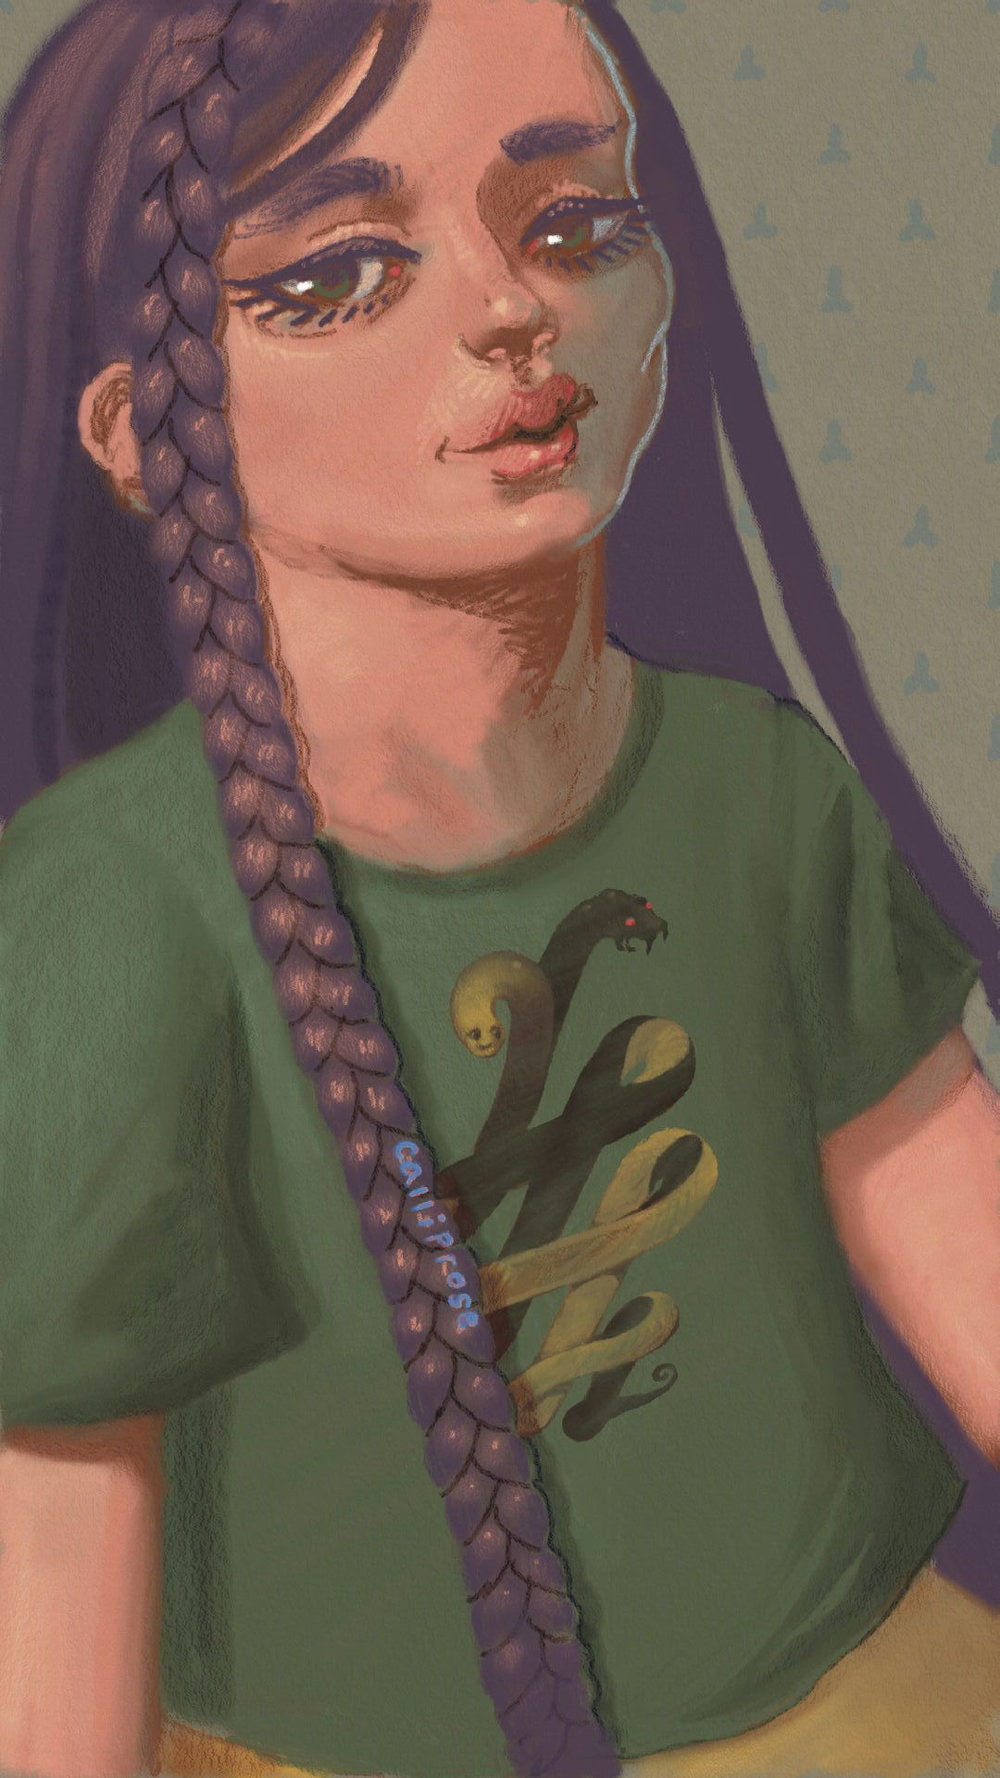 """Braid Boy 2.5"" by Jessica Booker, 1080x1920px, digital illustration (2016)"